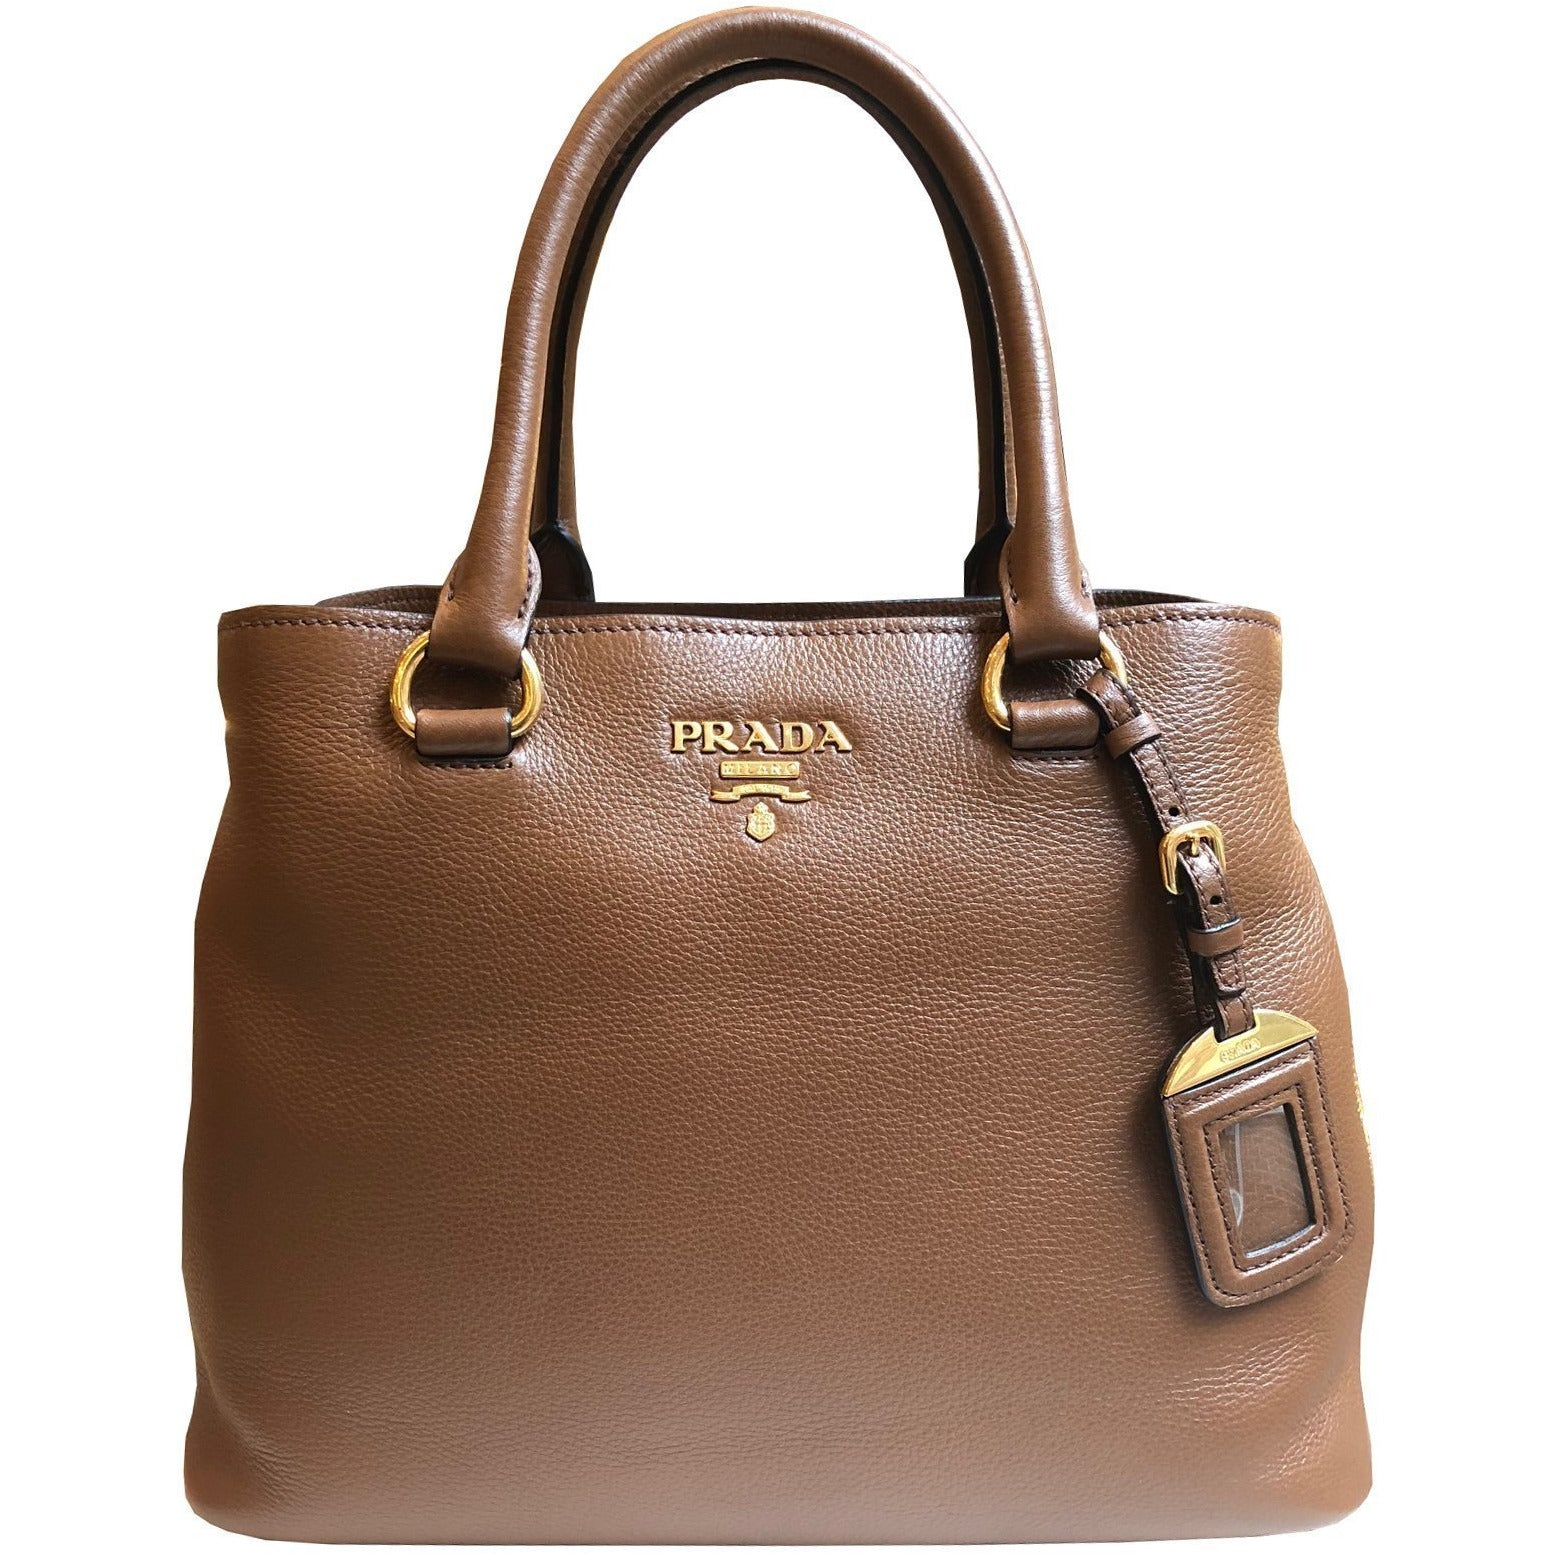 Prada Women's Brown Vitello Phenix Leather Large Tote Handbag 1BA058